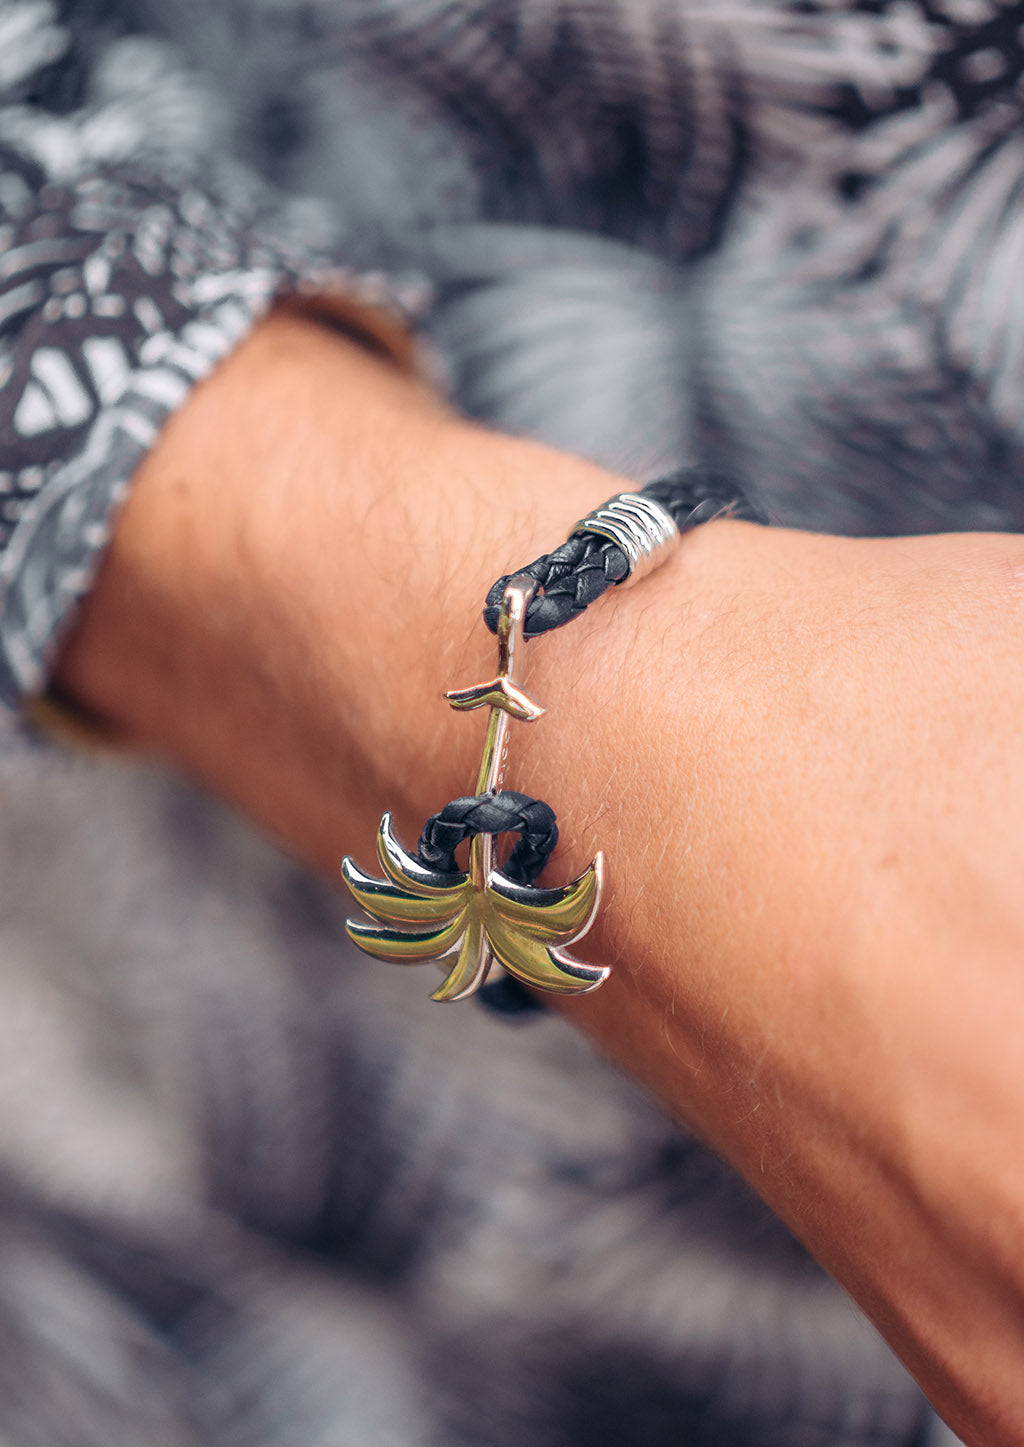 Twilight Silver - Palm anchor bracelet with black leather. Lifestyle photo on wrist.